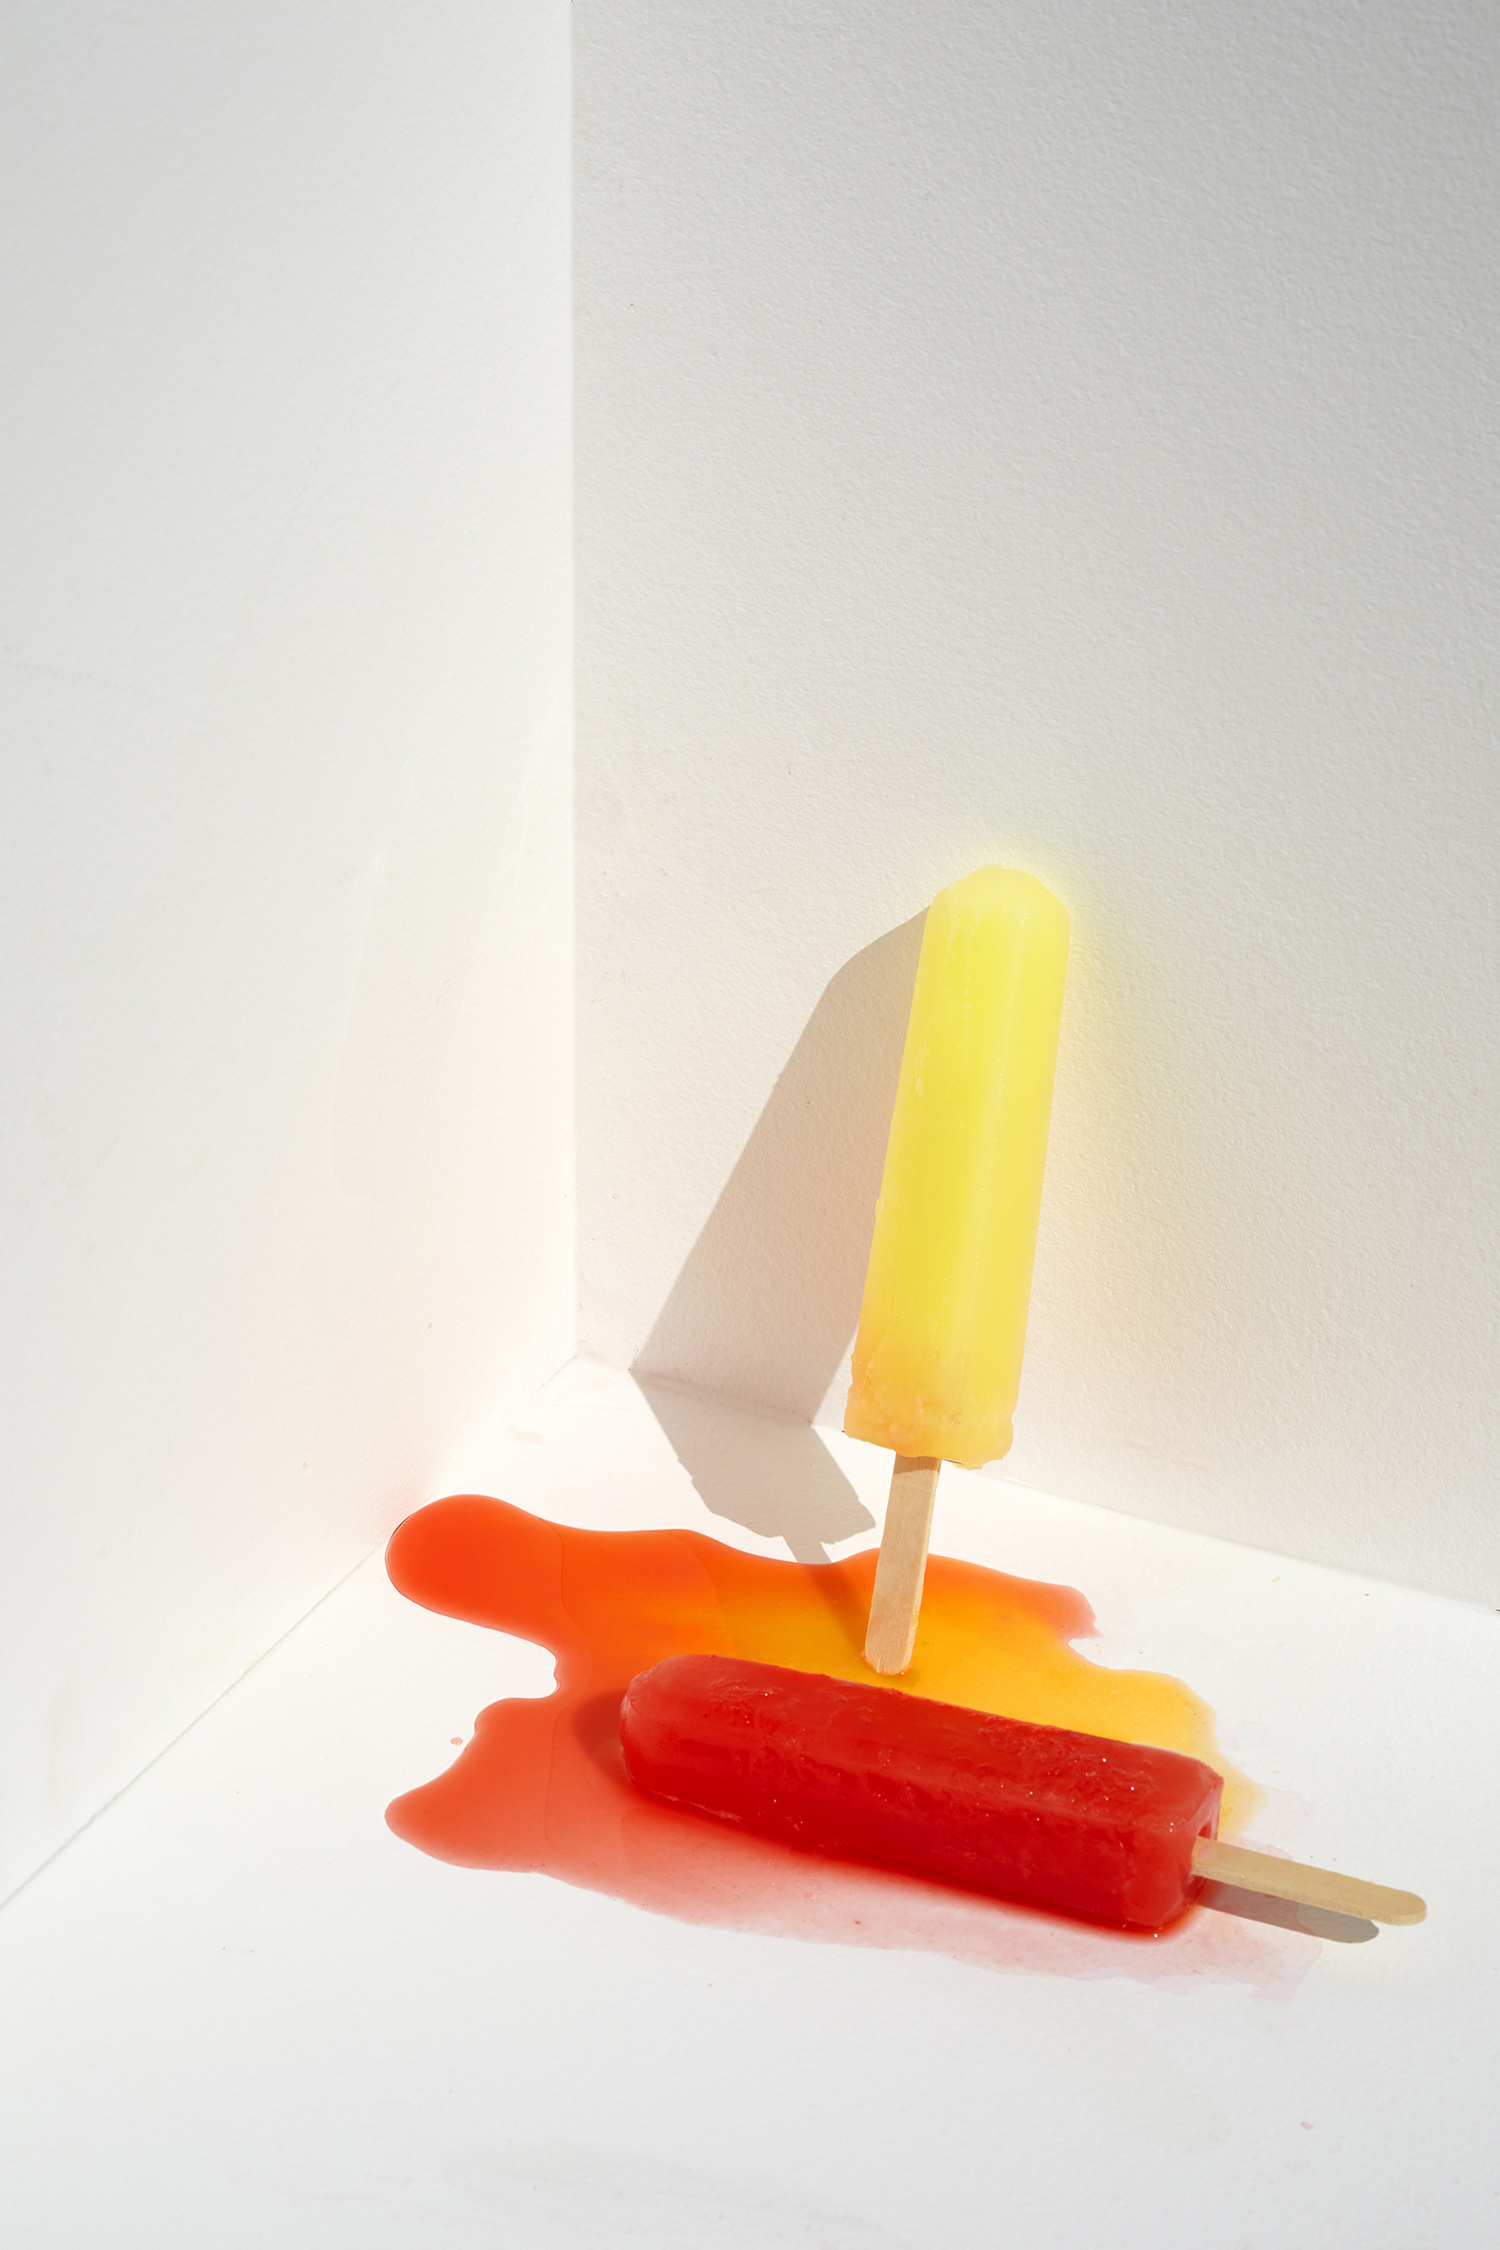 Popsicle melting still life on a hot summer day